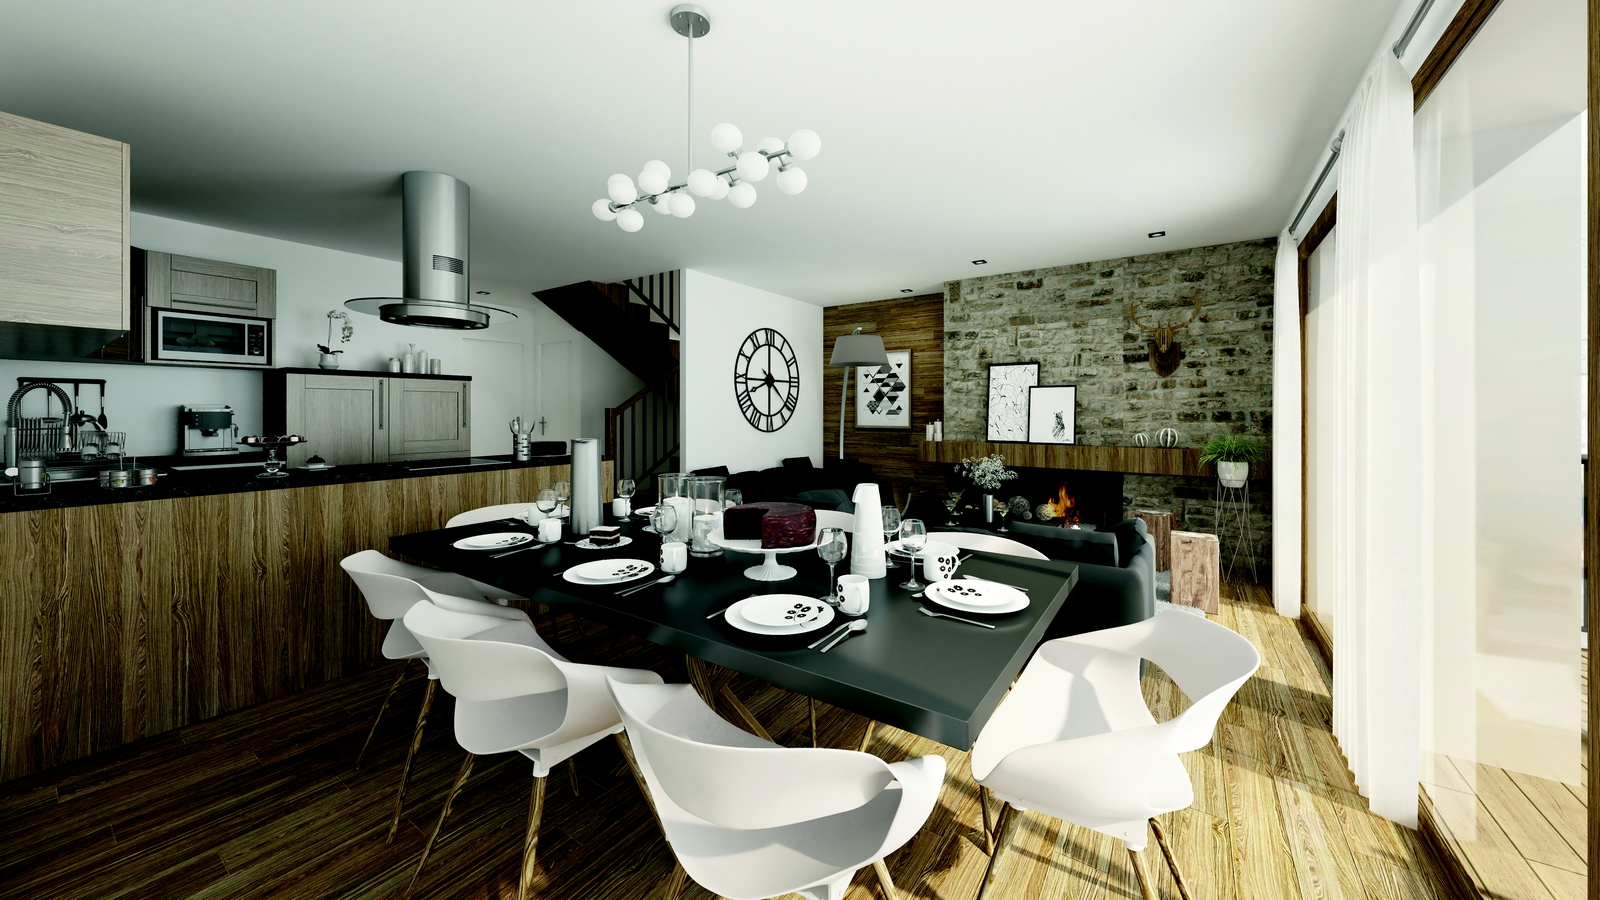 102 m² apartment - 4 bedrooms - in a new chalet Chalet in Courchevel